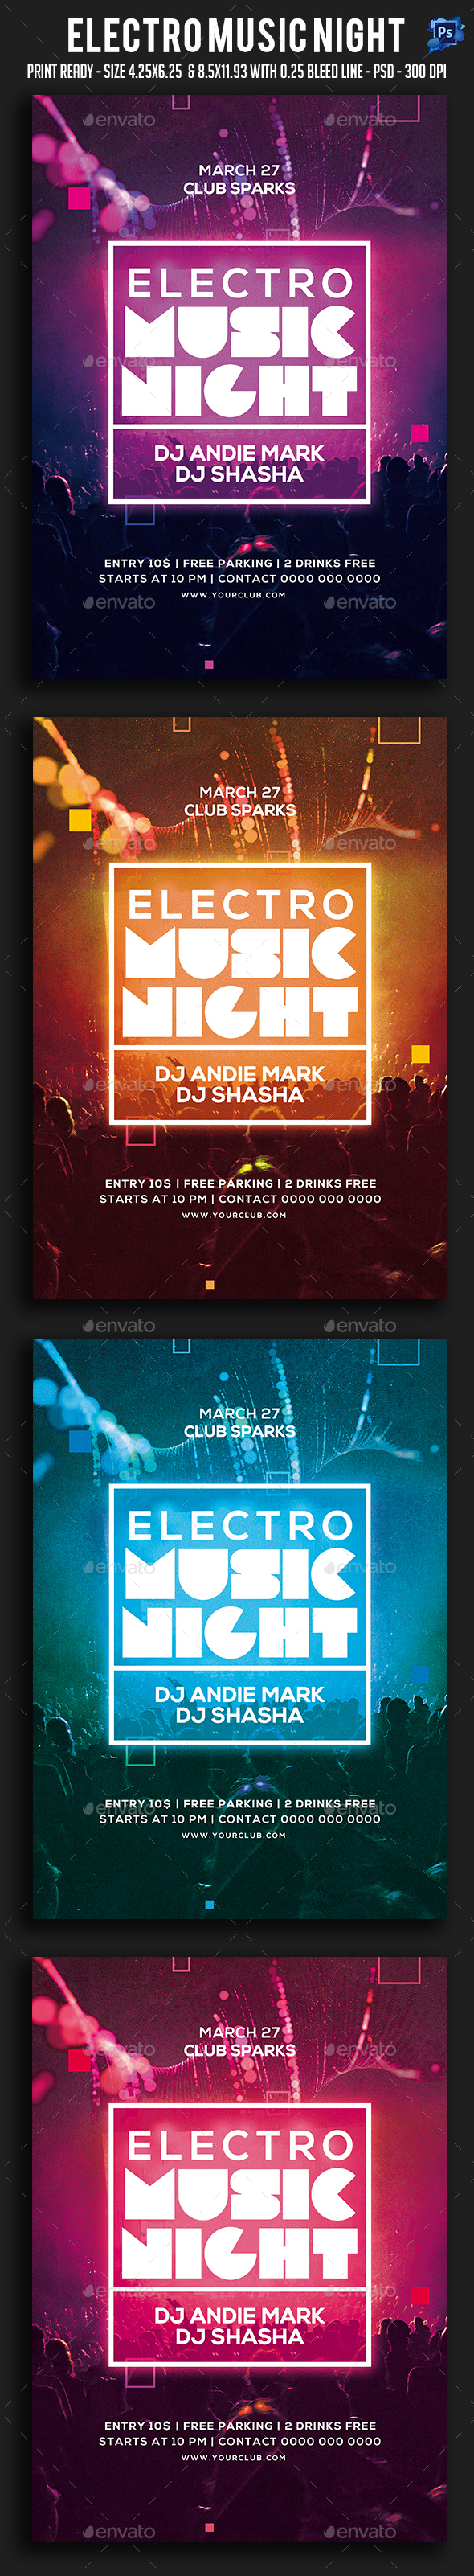 Electro Music Night Flyer - Clubs & Parties Events